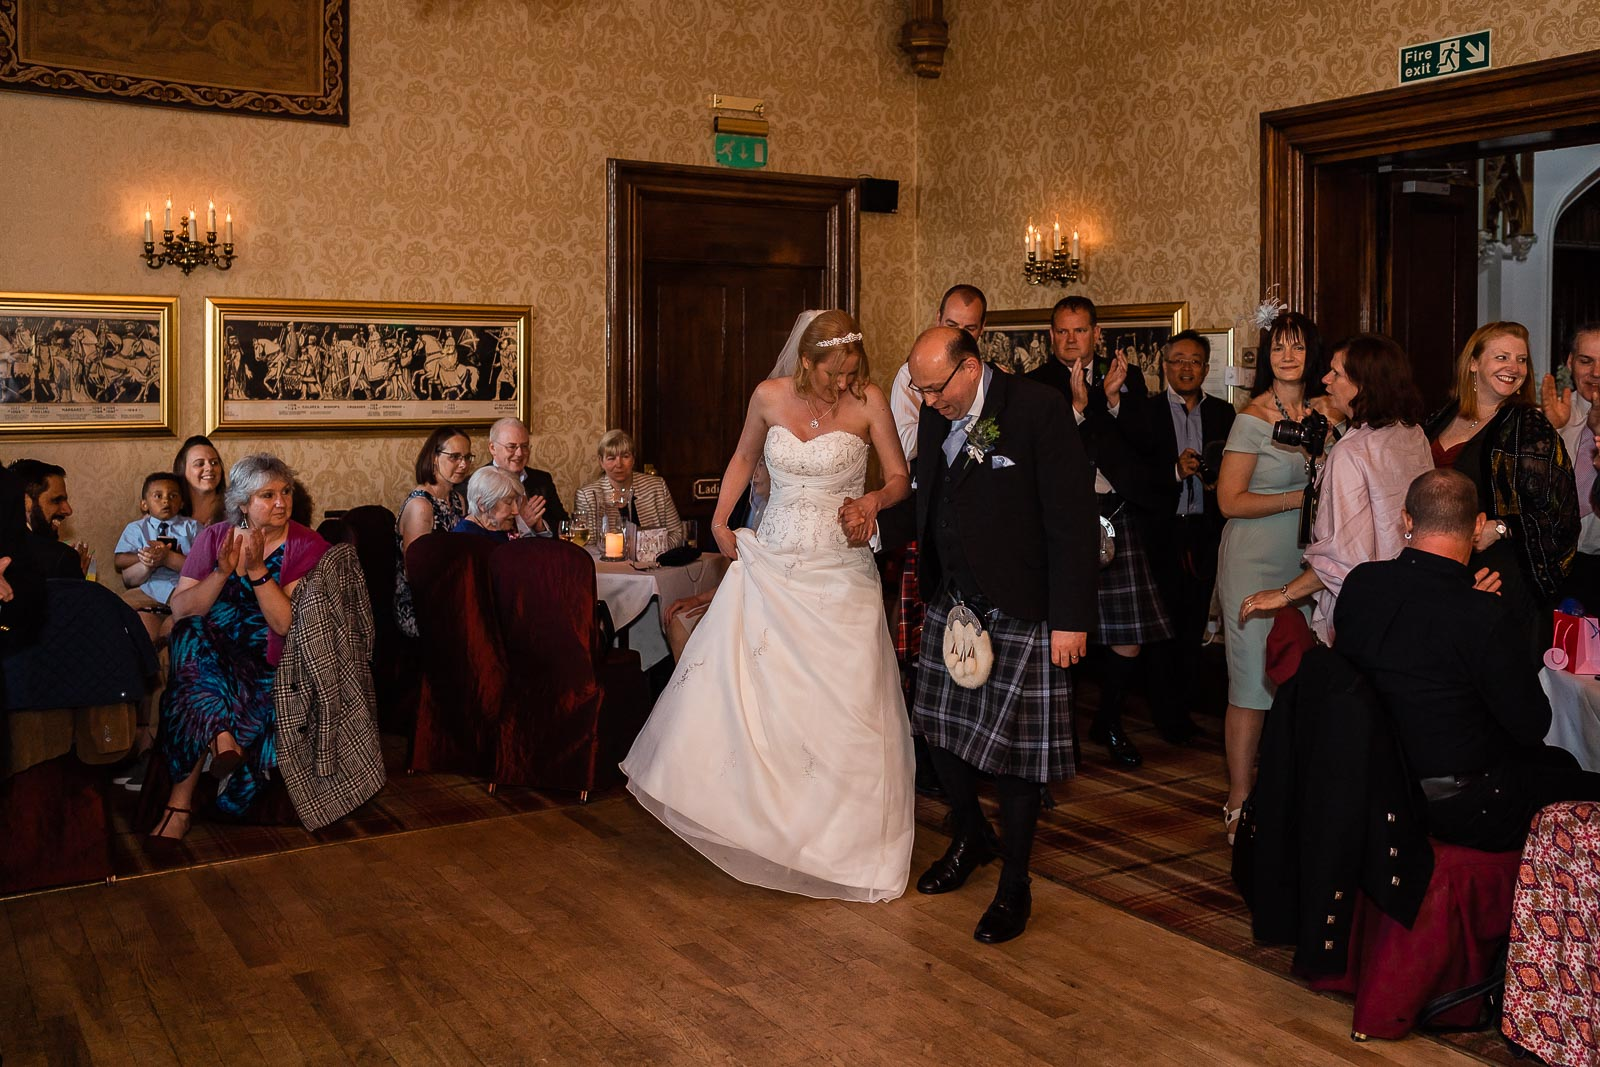 dalhousie_castle_wedding_edinburgh_dearlyphotography (315 of 371).jpg